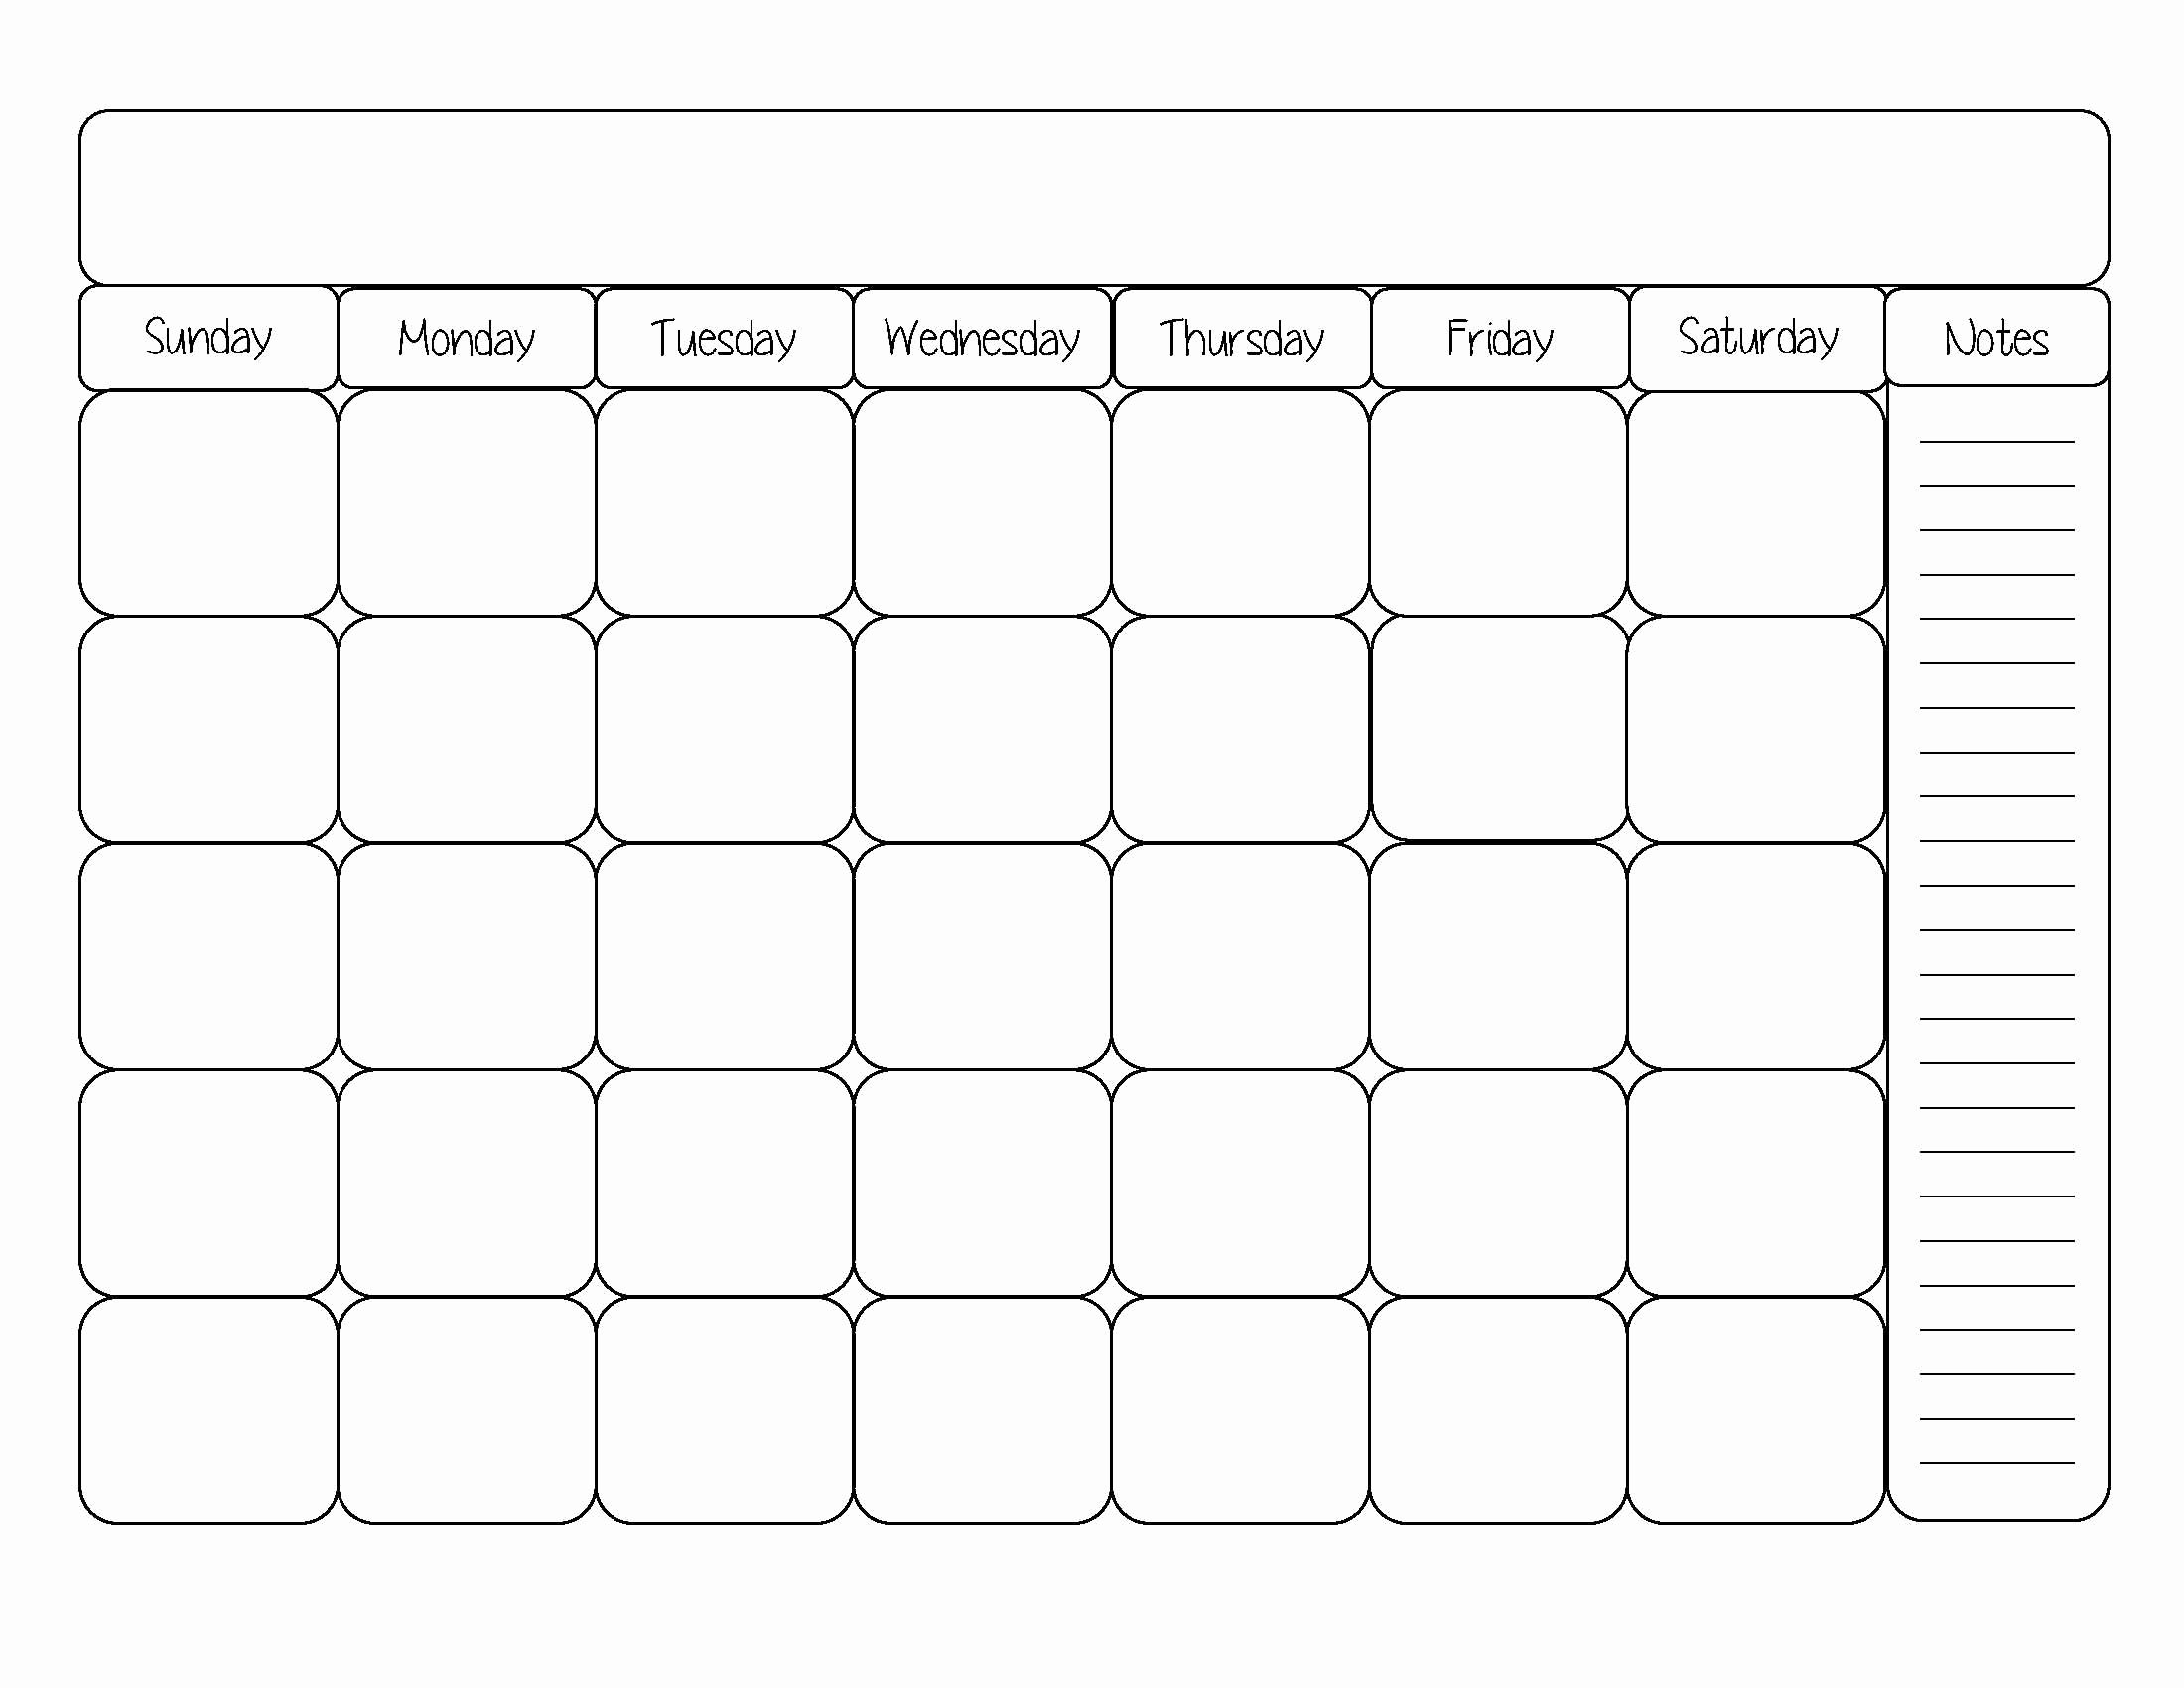 Blank Monthly Calendar Pdf Inspirational Take Blank Monthly Calendar Template Pdf ⋆ the Best